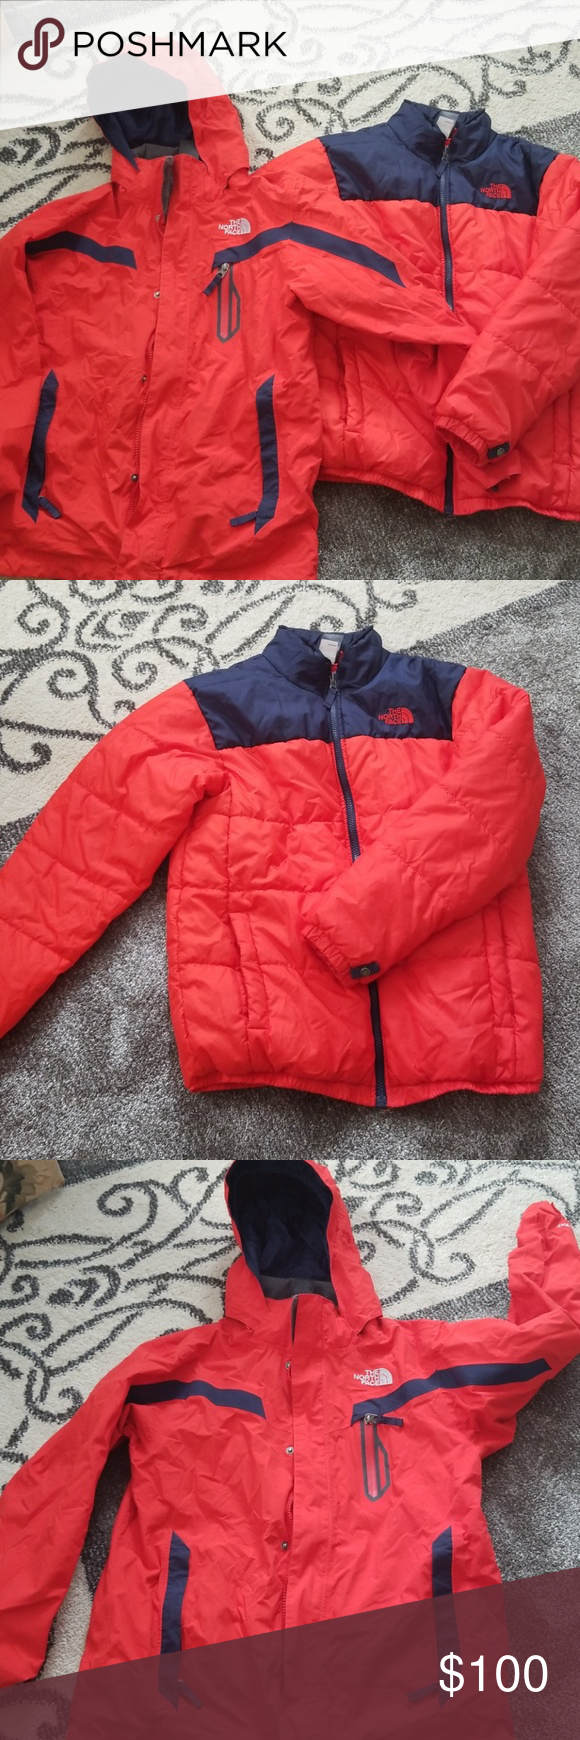 ed4e9ebe6 The North Face triclimate boys coat Bright red and navy blue the ...